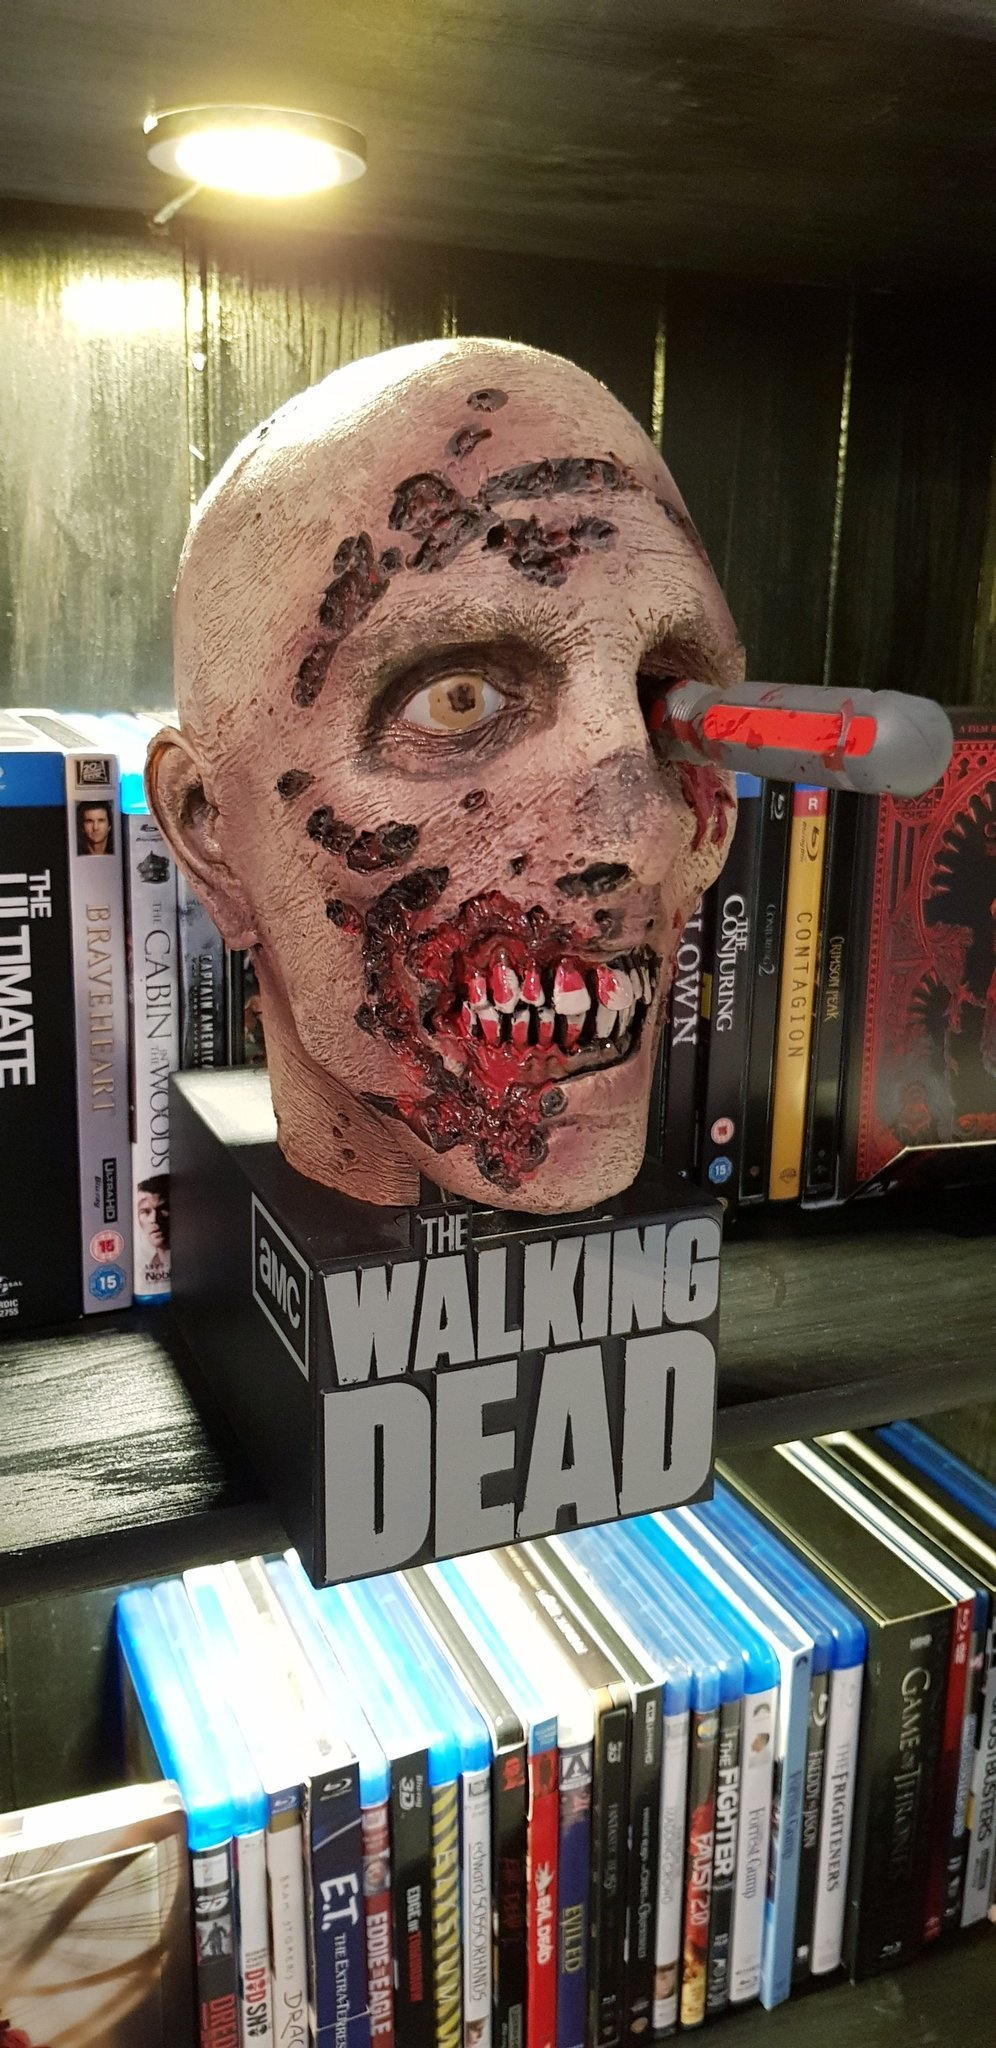 The Walking Dead - Season 2 (Limited Edition) + Digibook